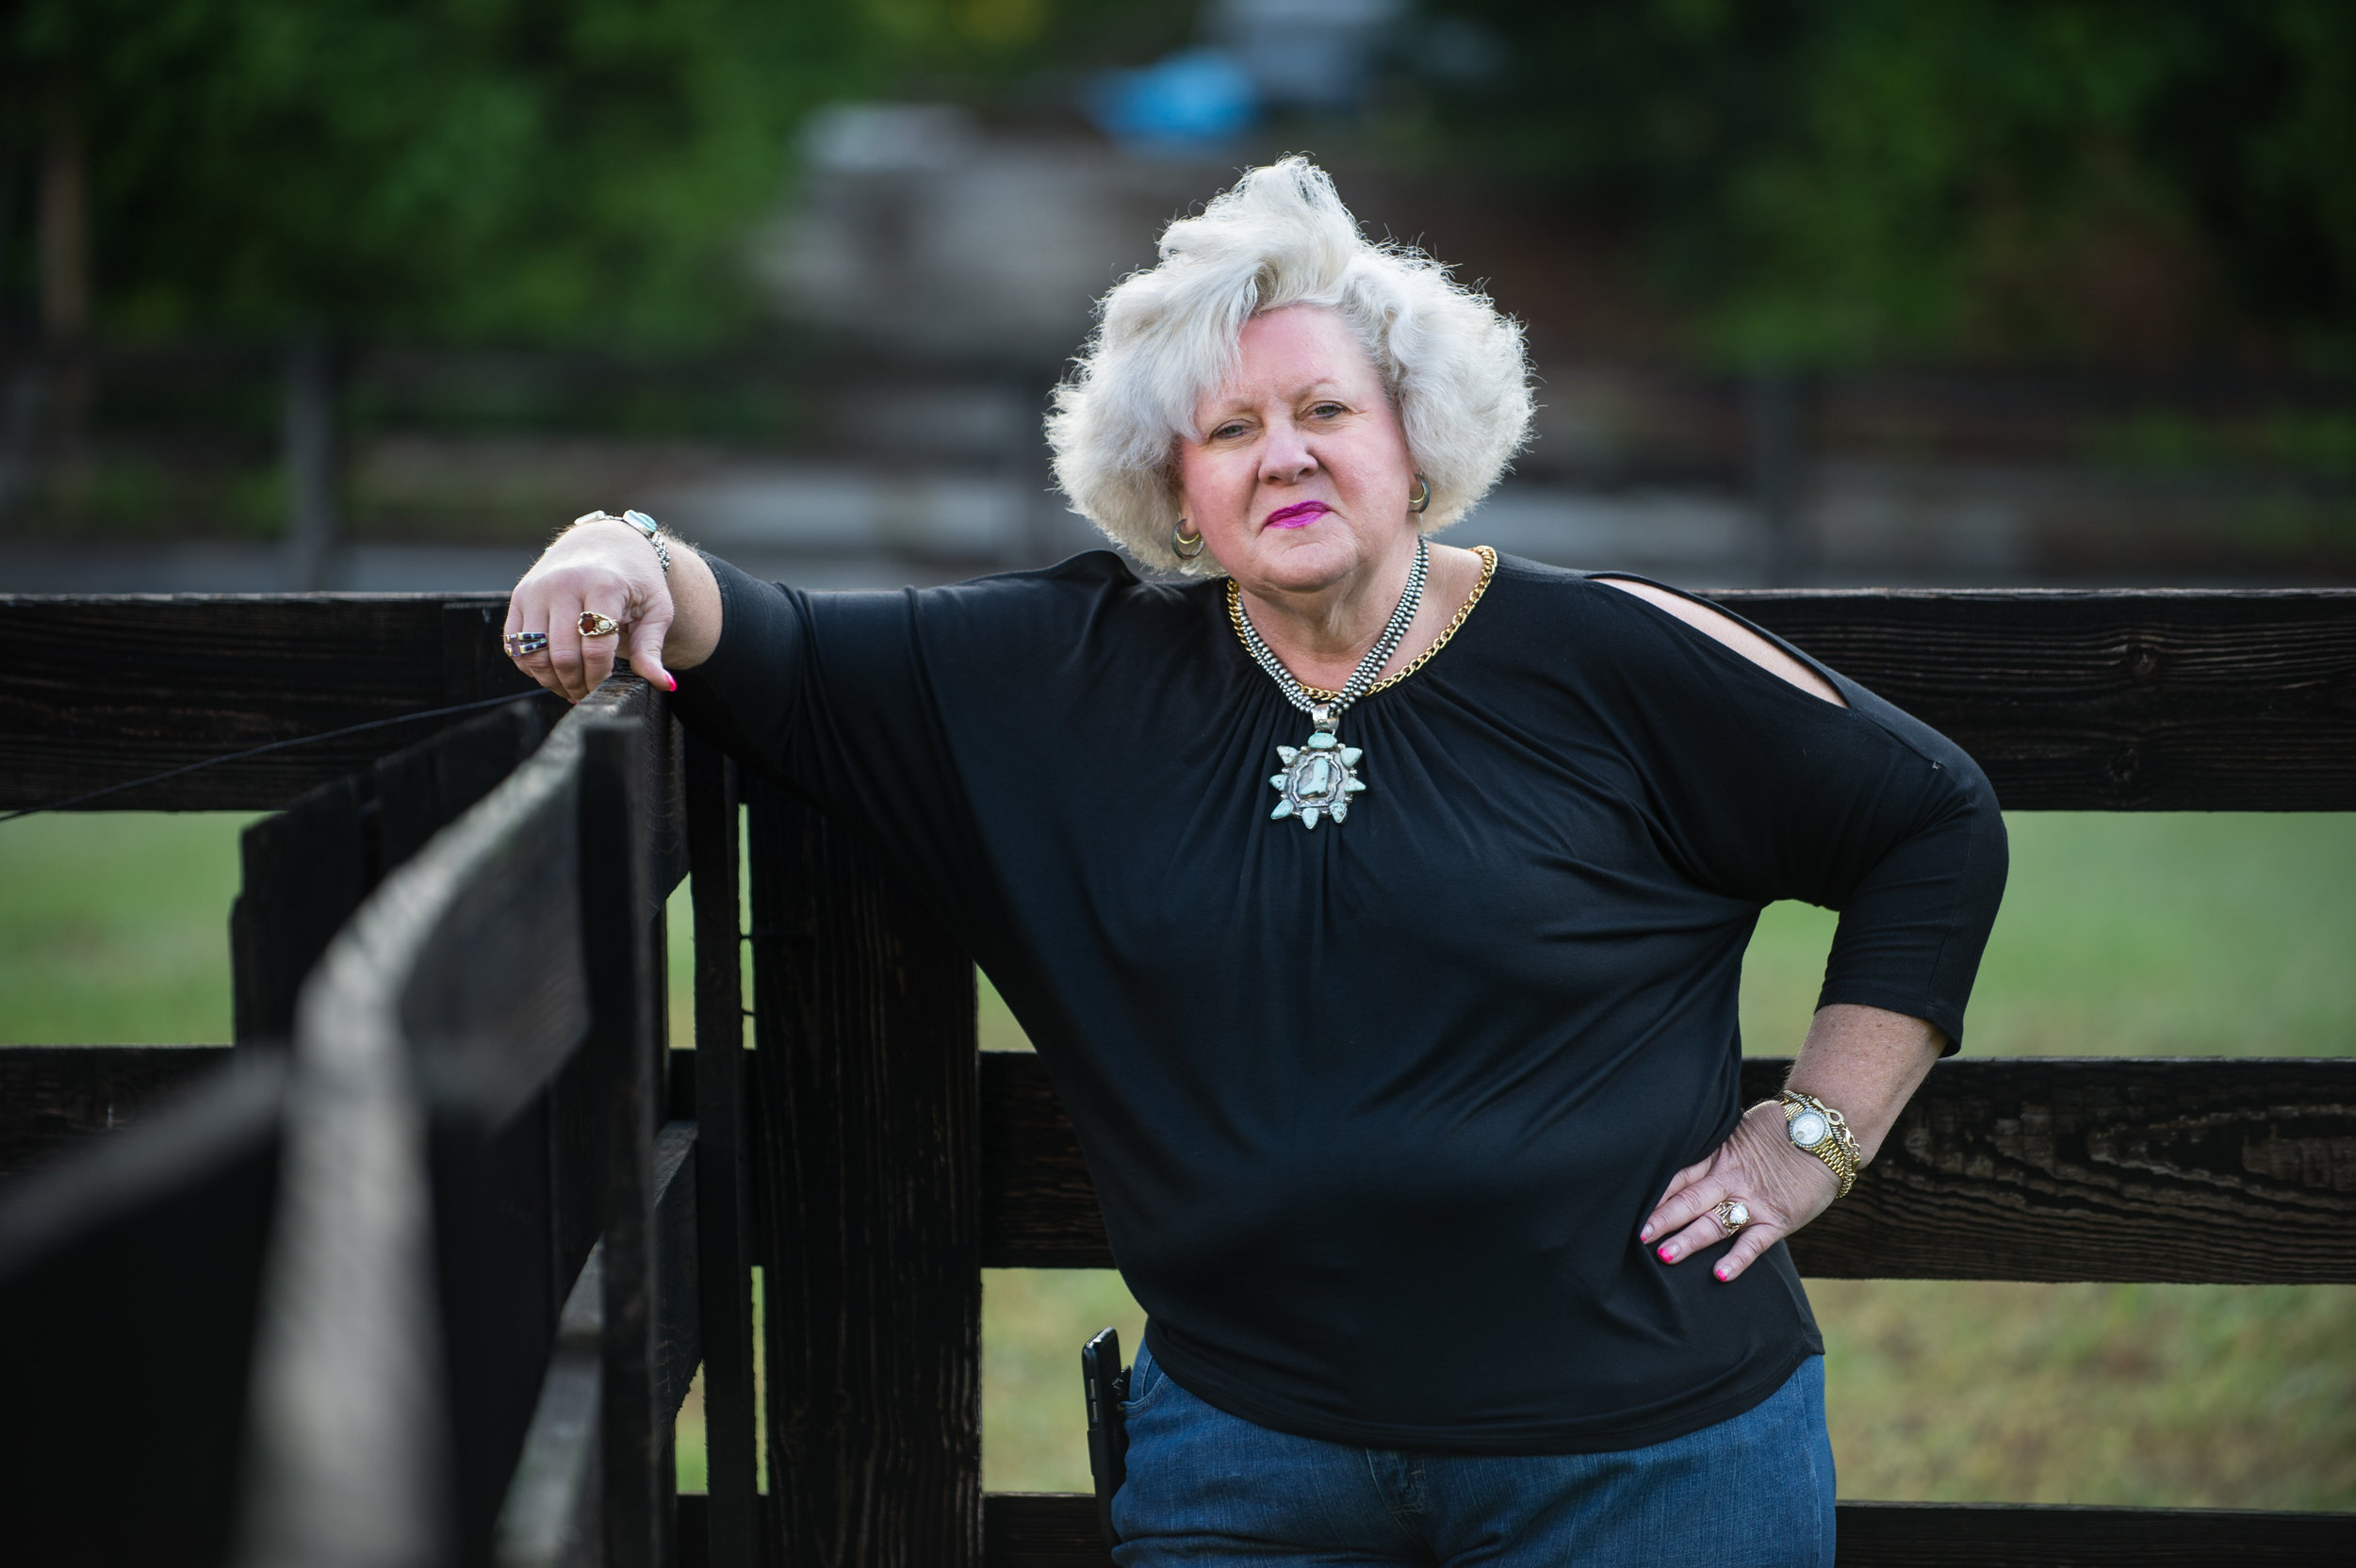 Ann Jones is a equine professional and cattle rancher with property in Georgia and Oklahoma. She's shown here on her farm, Jones Cutting Horses, in Flowery Branch, Ga. in April 2017.